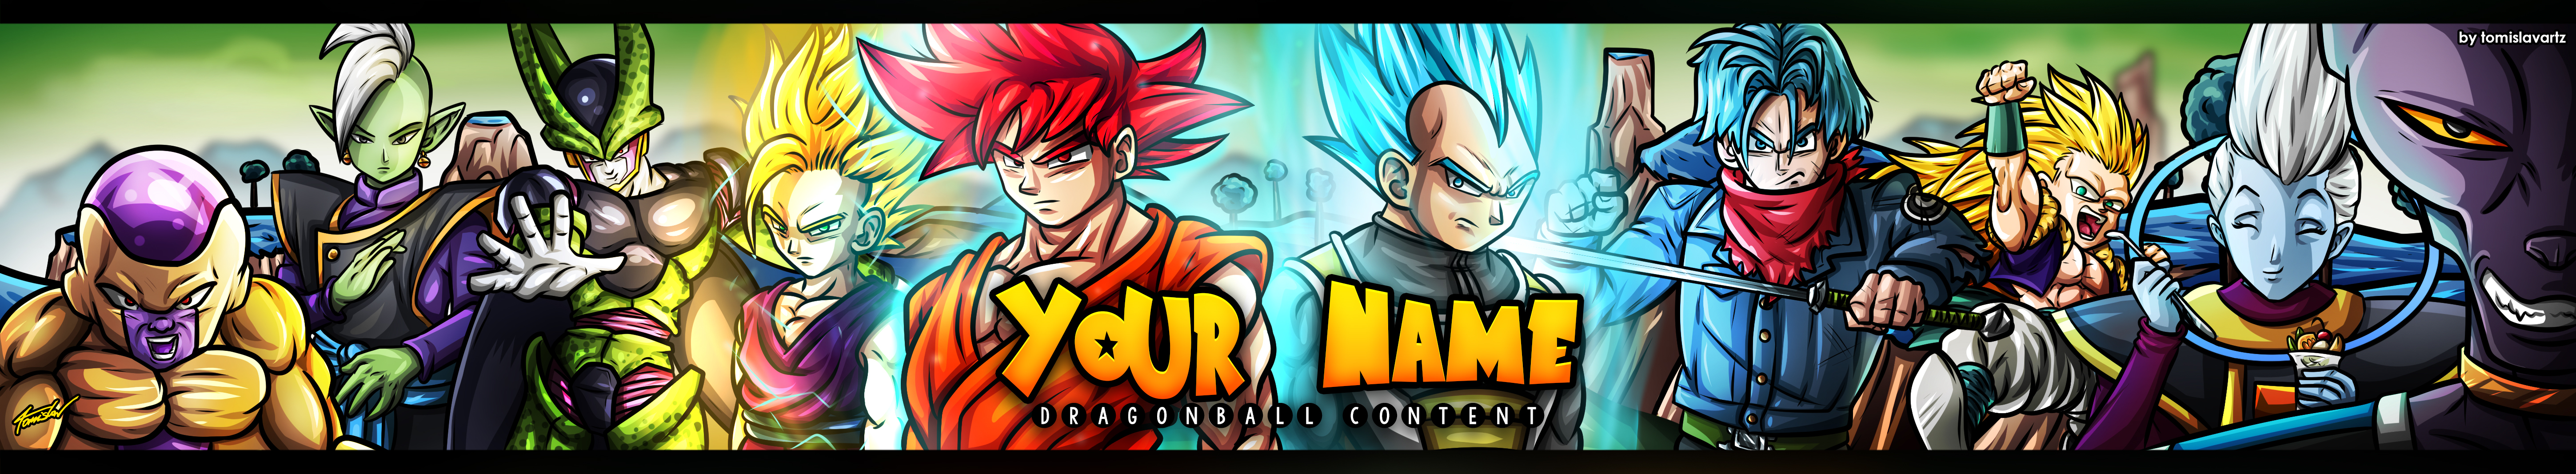 Free Dragon Ball Youtube Banner Download By Tomislavartz On